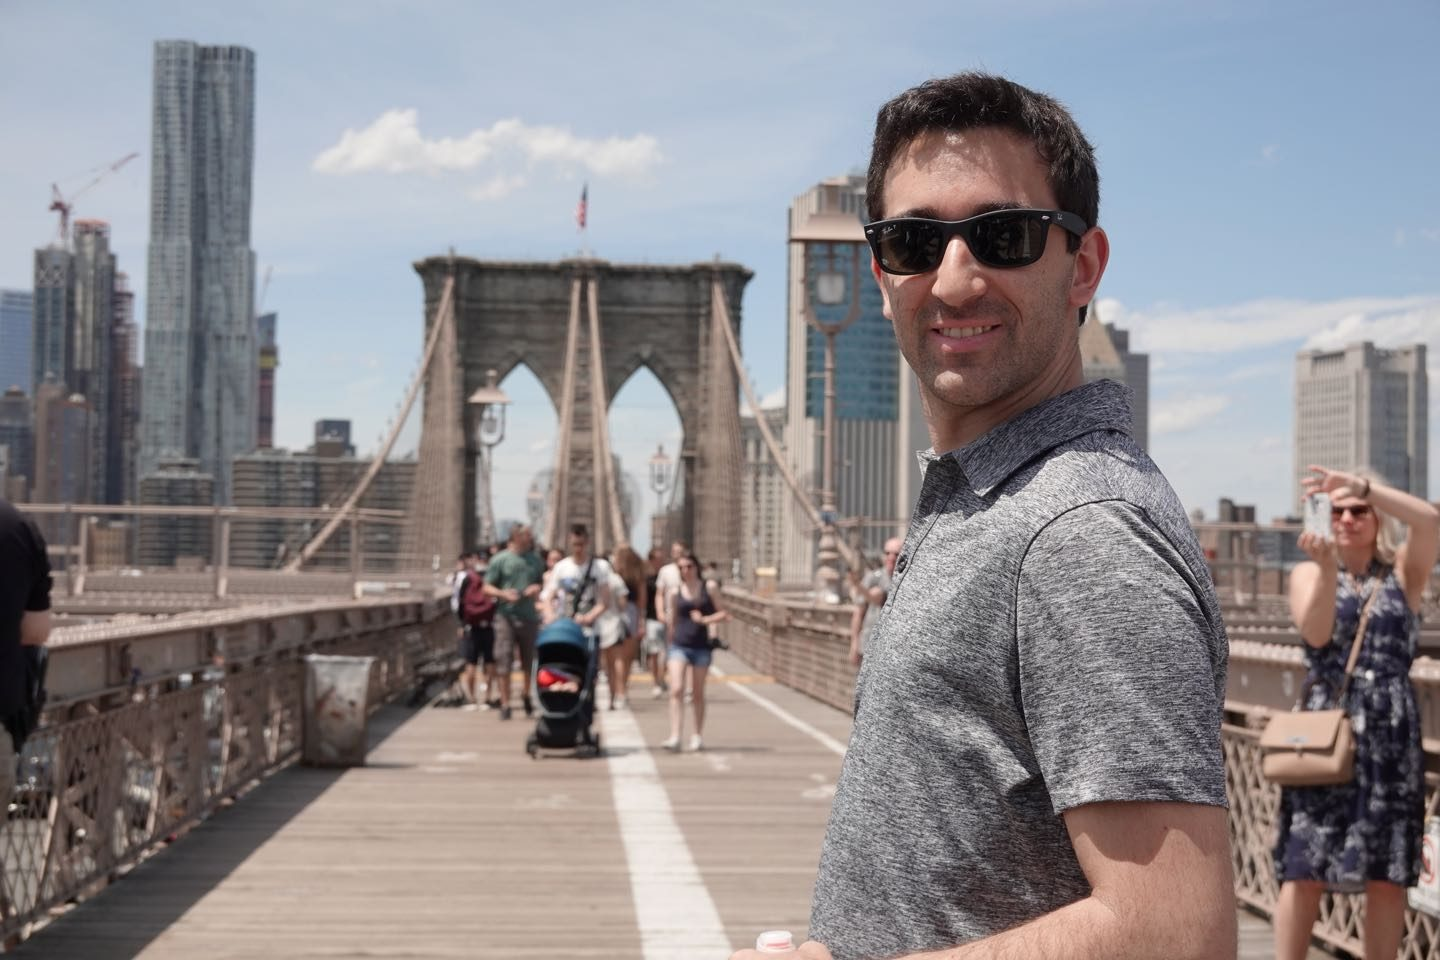 Selfies en el Brooklyn Bridge.